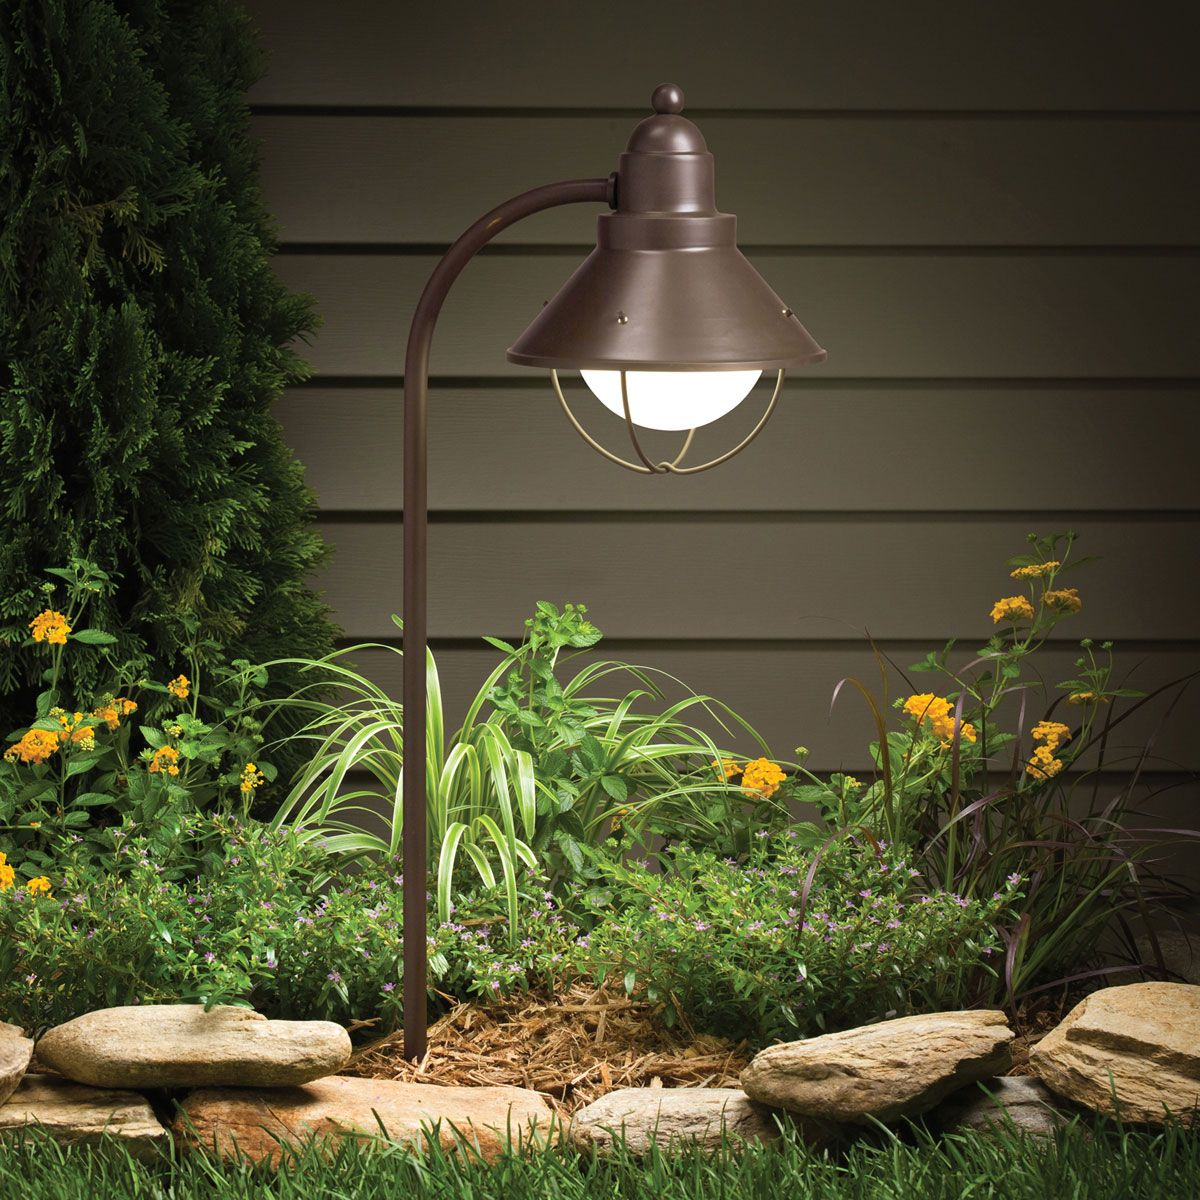 27 outdoor path lighting outdoor path lighting simple outdoorcom 27 outdoor path lighting outdoor path lighting simple outdoorcom gelatotv workwithnaturefo